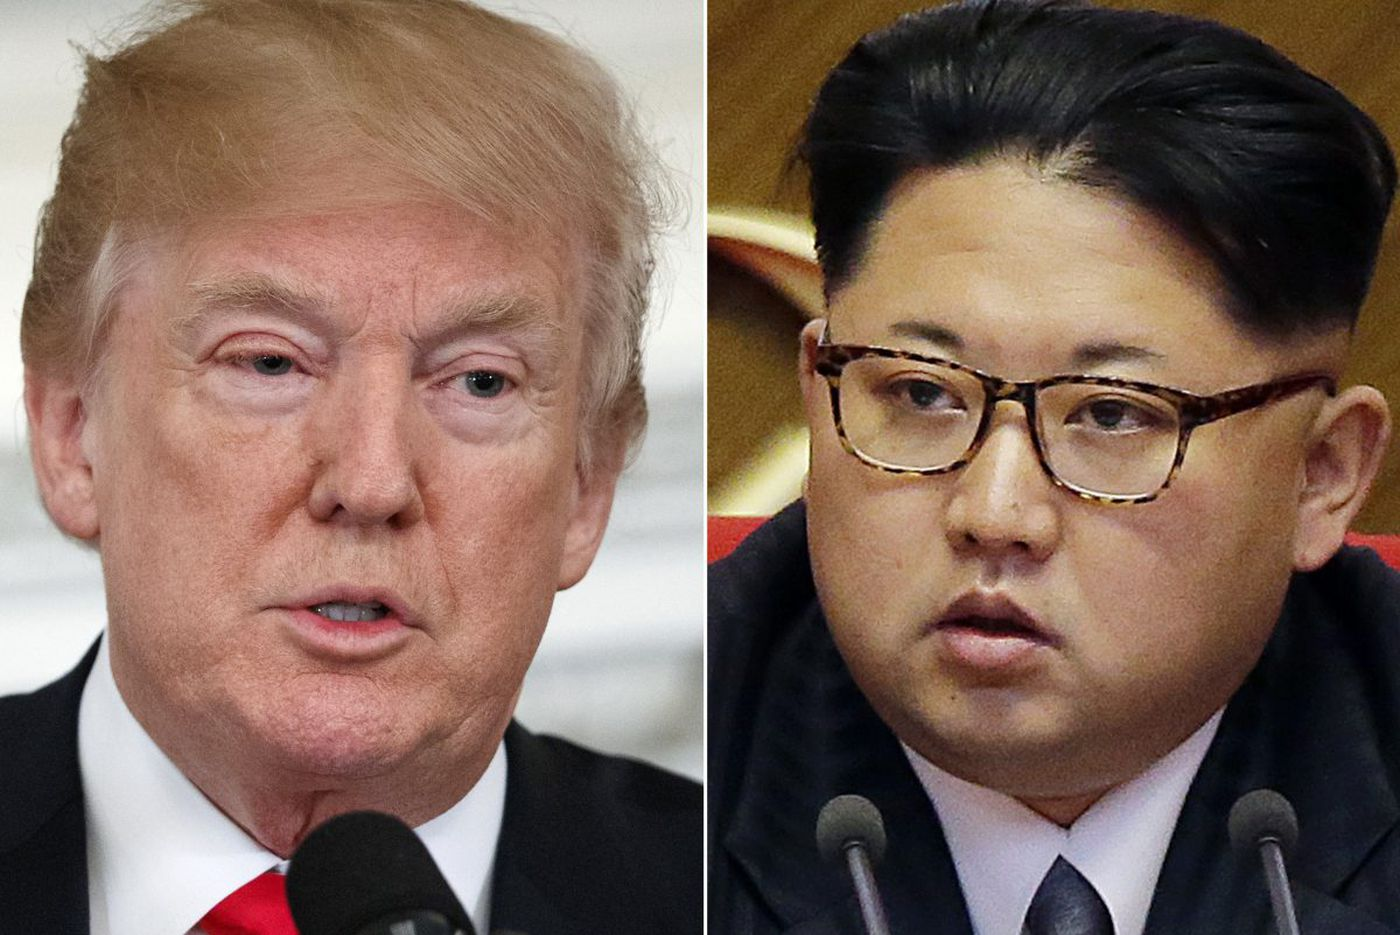 When Trump meets North Korea's Kim, will he know what he is doing? | Trudy Rubin